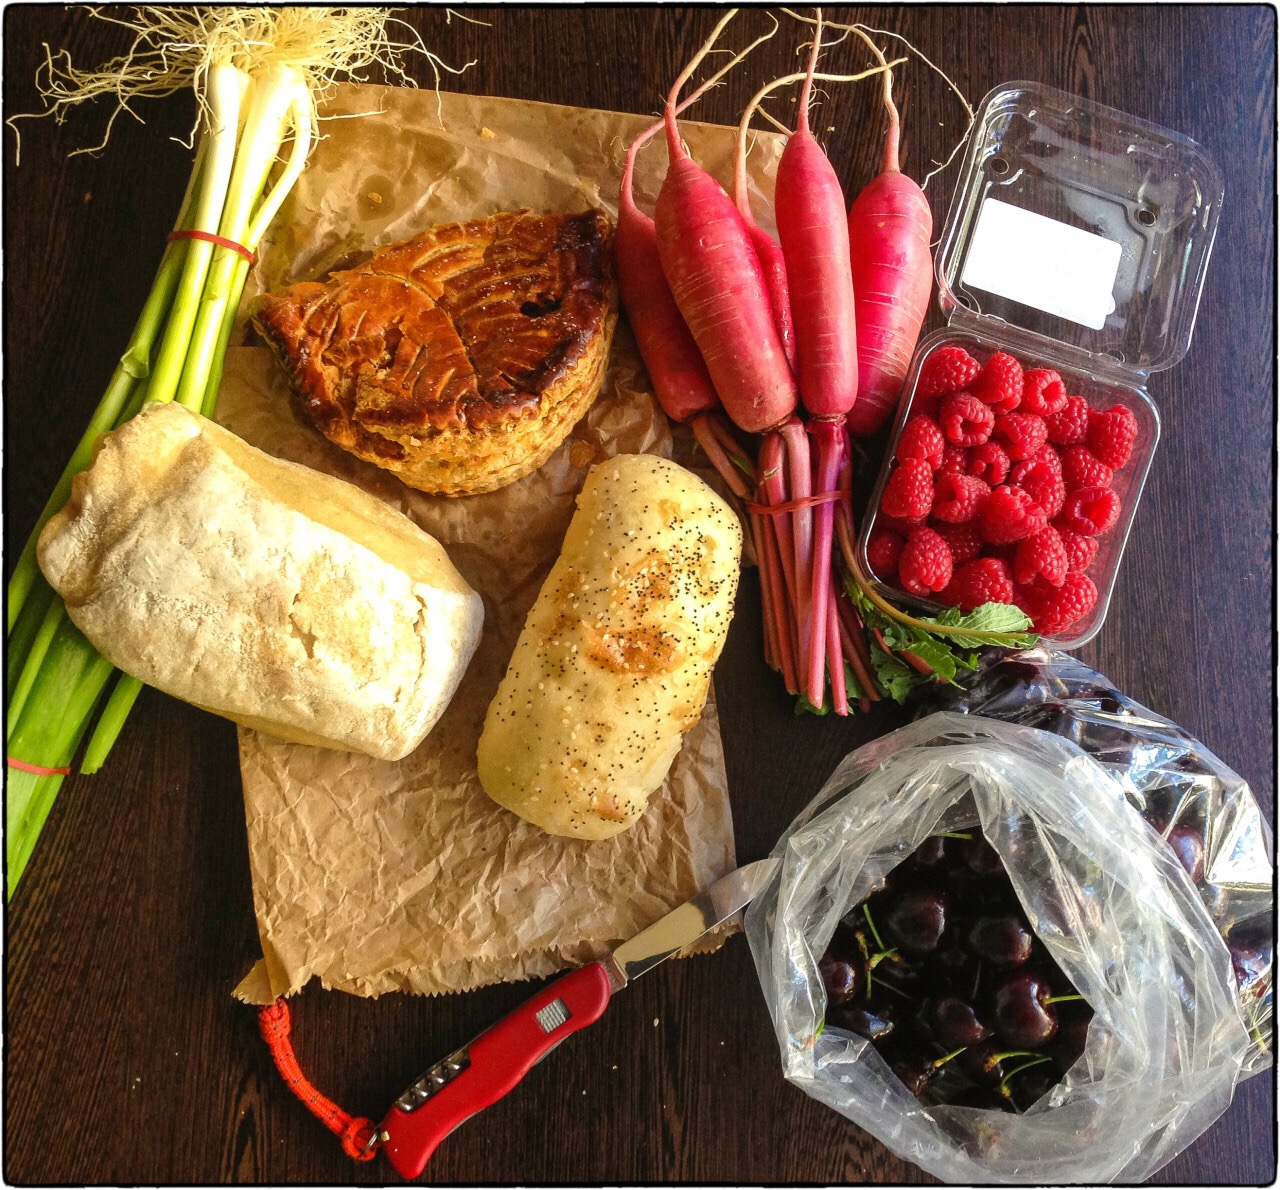 Food from a Tasmanian farmers' market — morally superior of just good and lcoal?